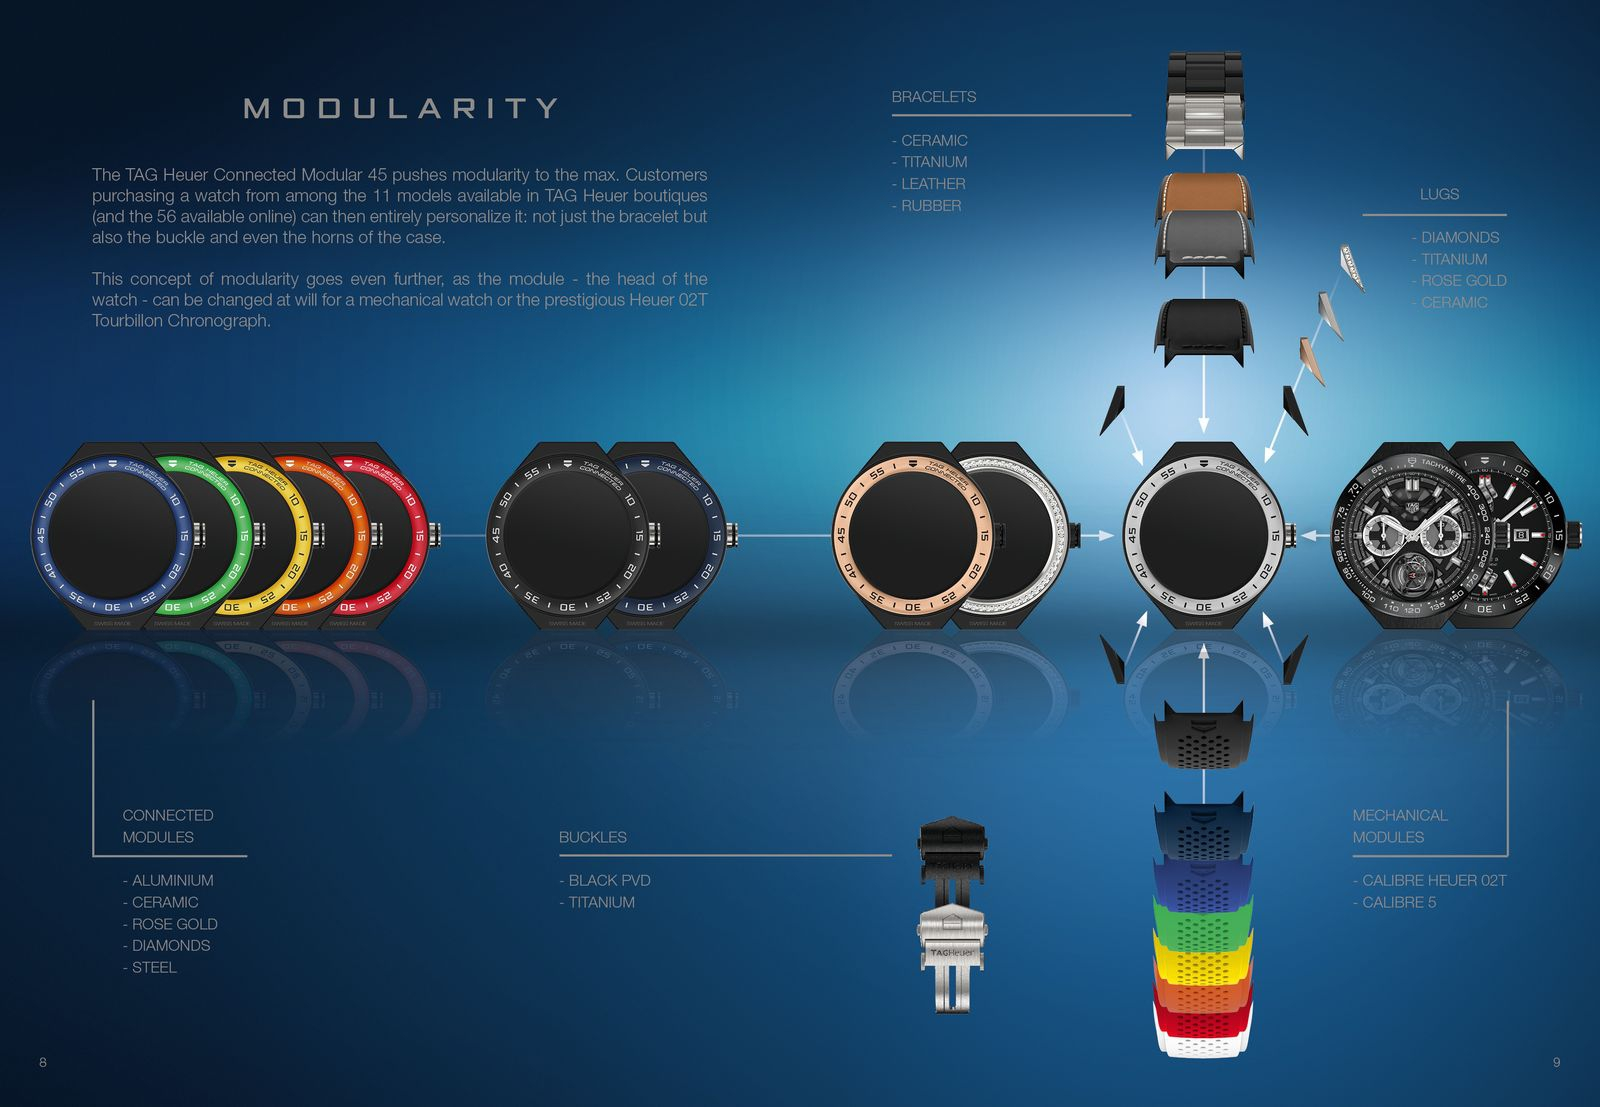 The modularity of the TAG Heuer Connected Modular 45